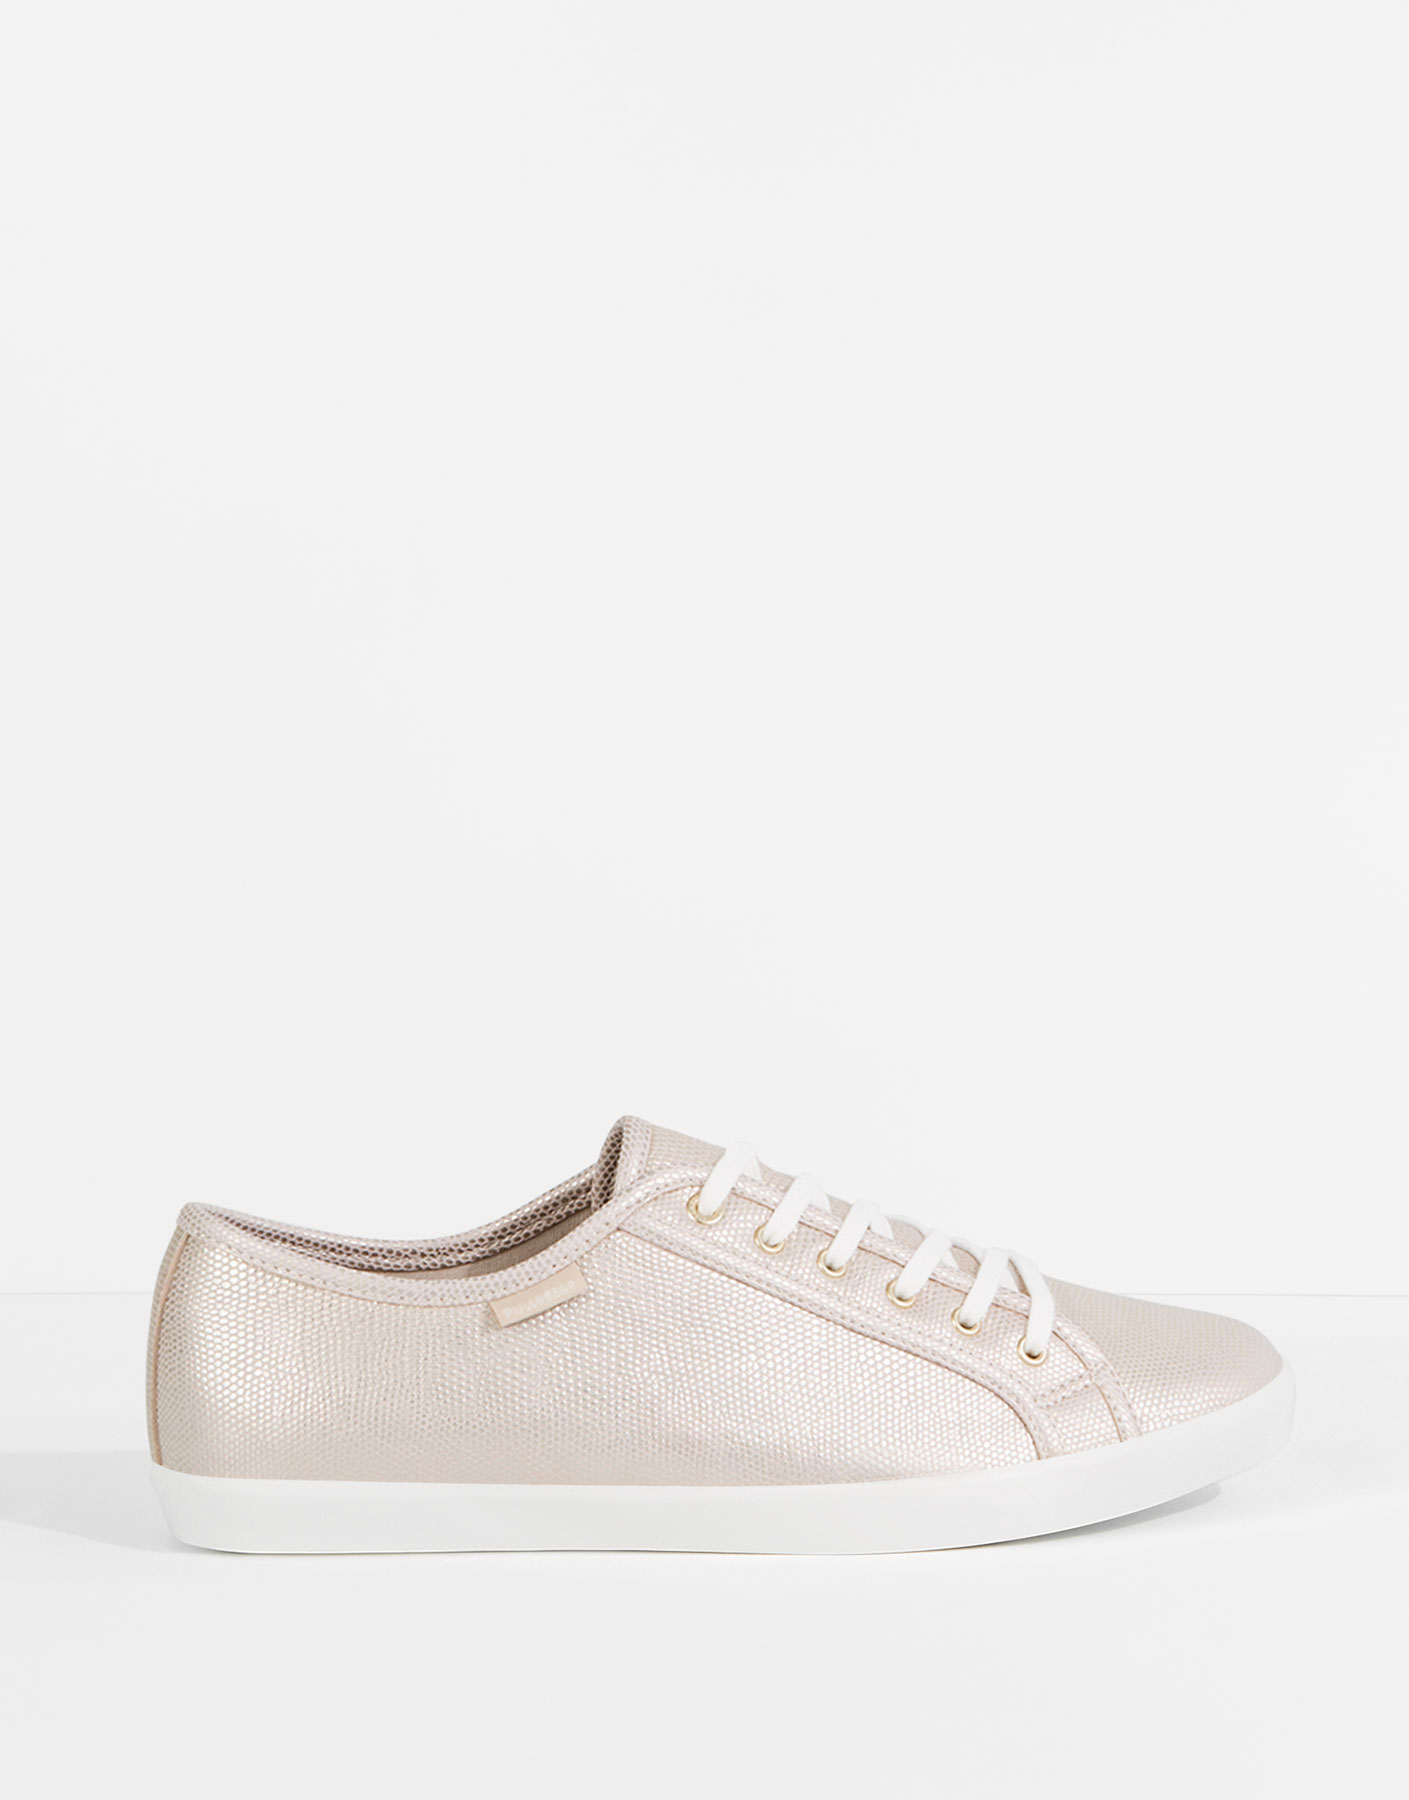 Golden-toned plimsolls